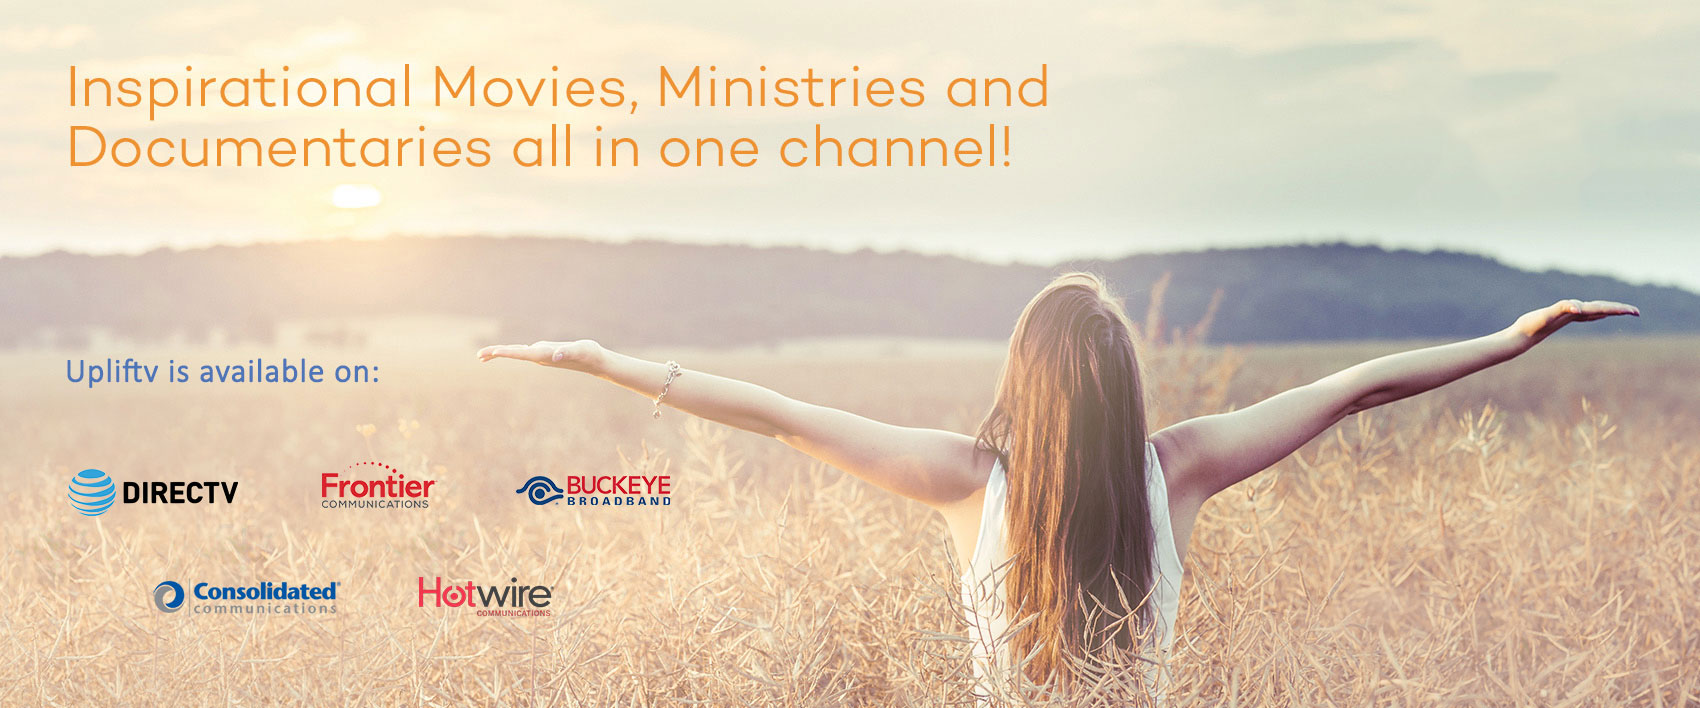 Upliftv is available on DIRECTV, Frontier Communications, Buckeye Broadband, Consolidated and Hotwire Communications